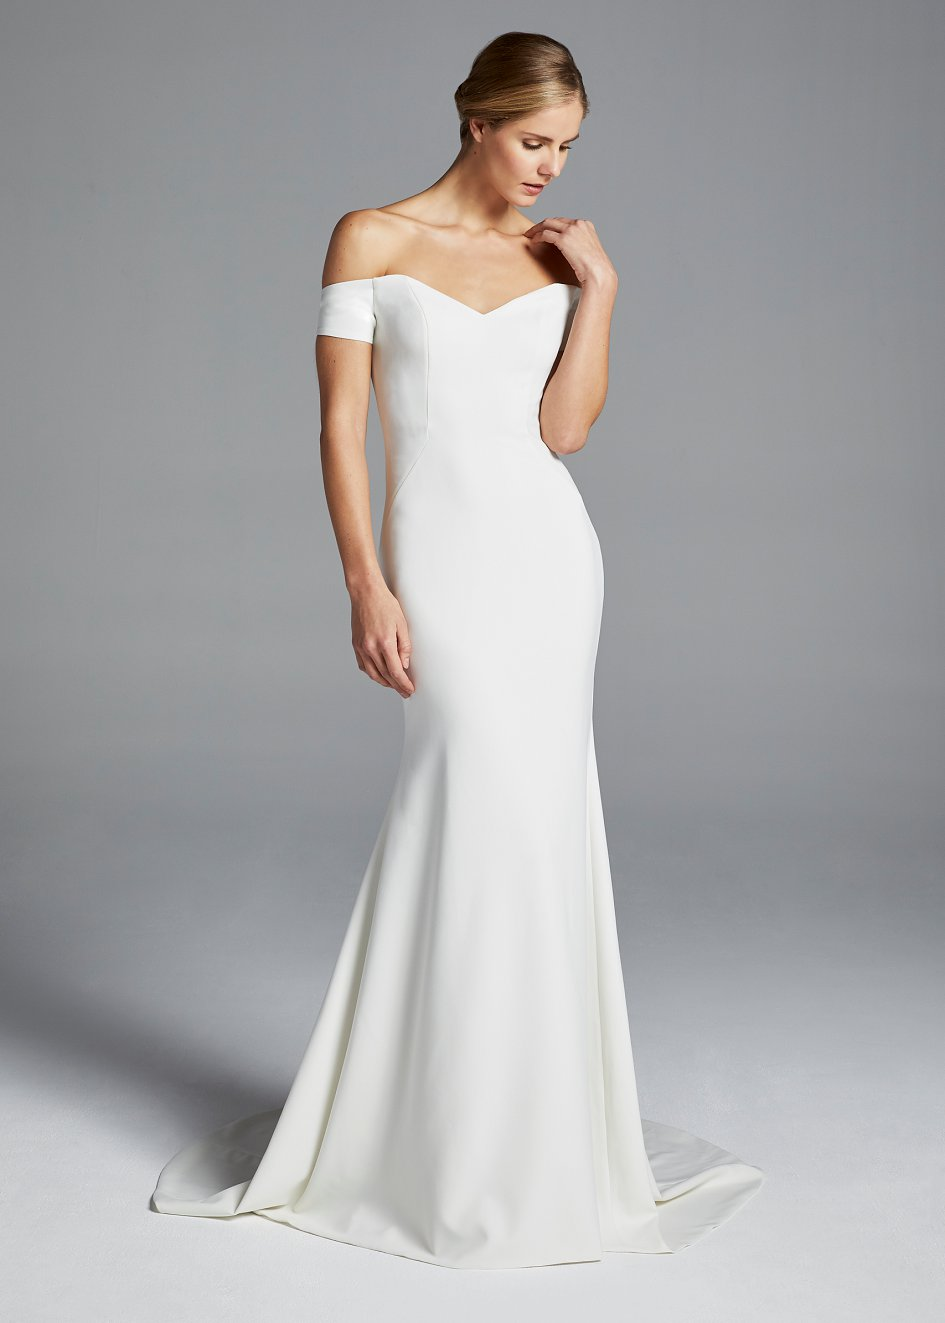 Anne Barge S Jolie Gown Features A Portrait Neckline Of Spanish Stretch Crepe With Open Back And Cuff Sleeves Finished Bow Band